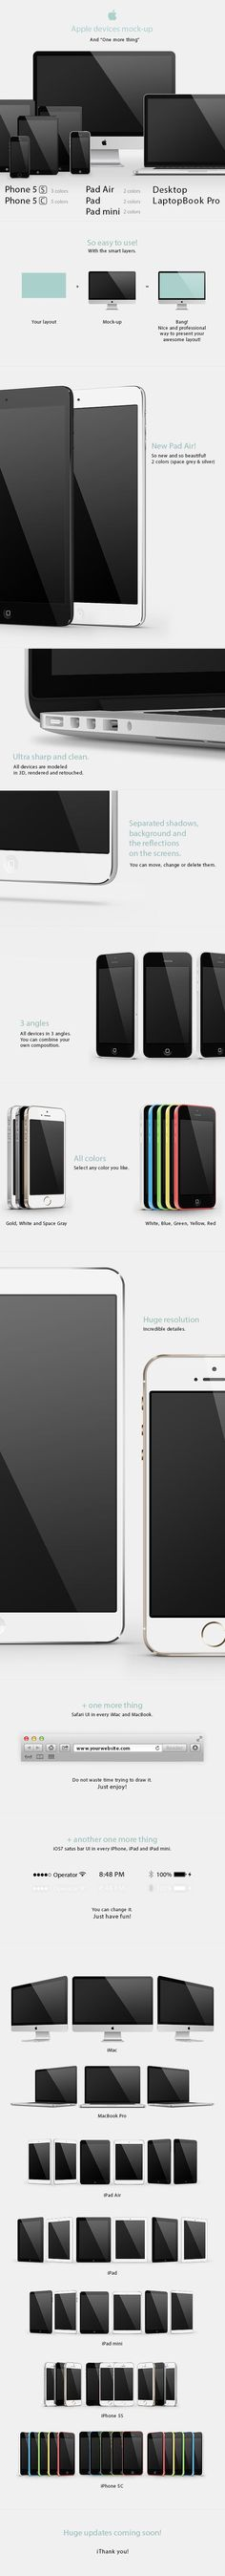 Mock ups of Apple